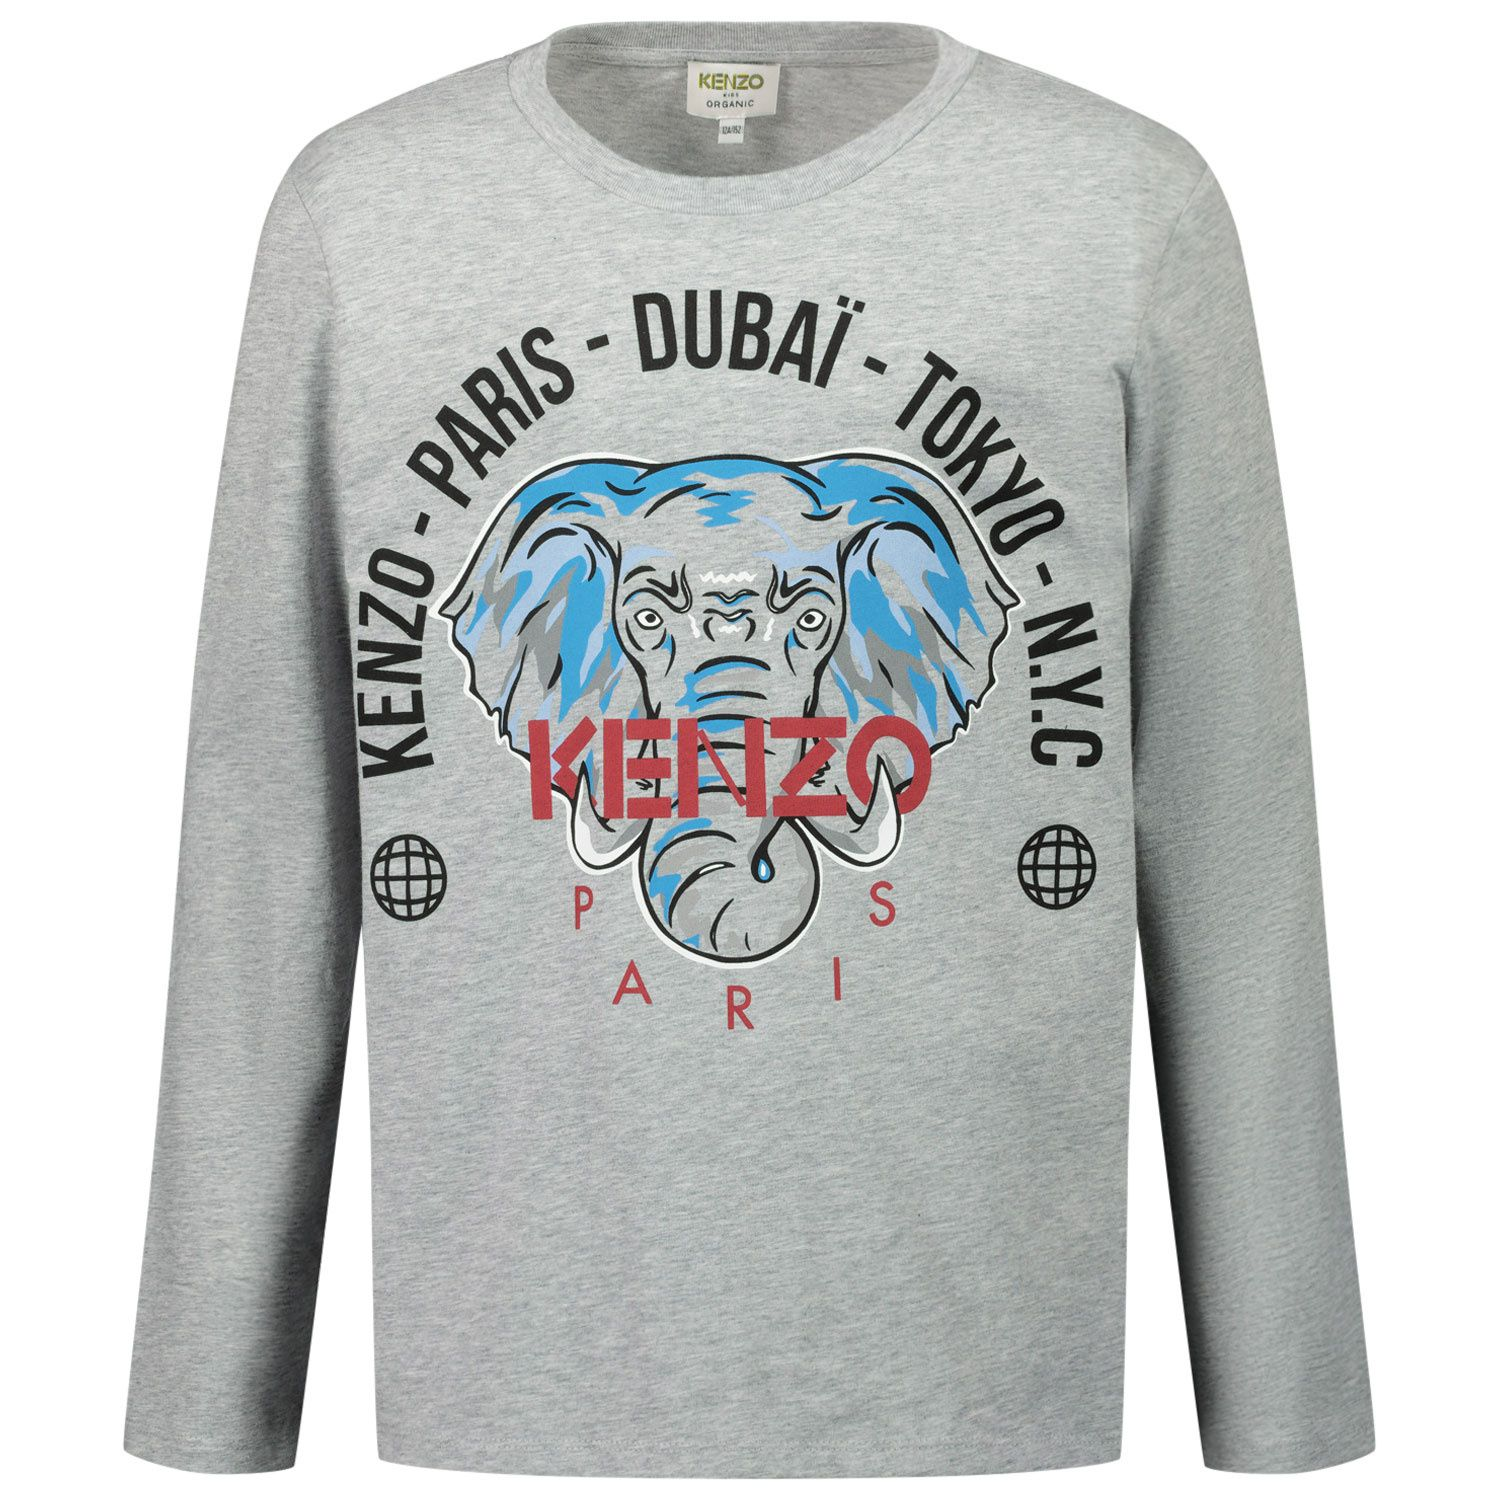 Picture of Kenzo KR10608 kids t-shirt grey